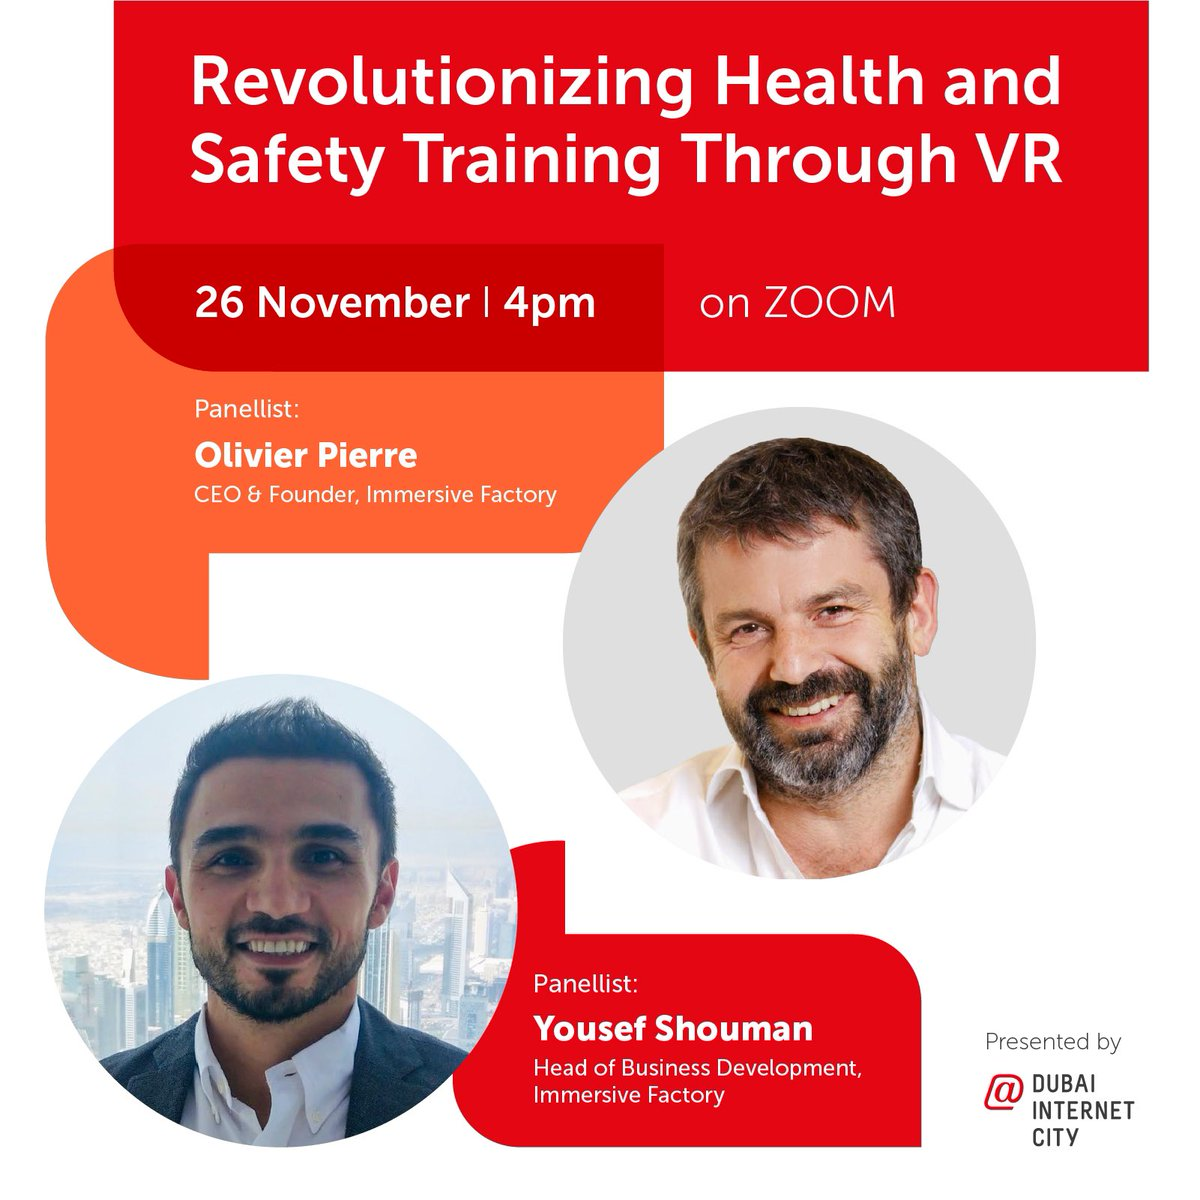 Immersive #VR environments can greatly assist employee learning for new machinery and health & safety training. Join our upcoming virtual discussion with experts from @immersivefactor, @htcvive and @suez to know more. Register: https://t.co/RYbQmqwqYd https://t.co/RV1Ts9Hmip